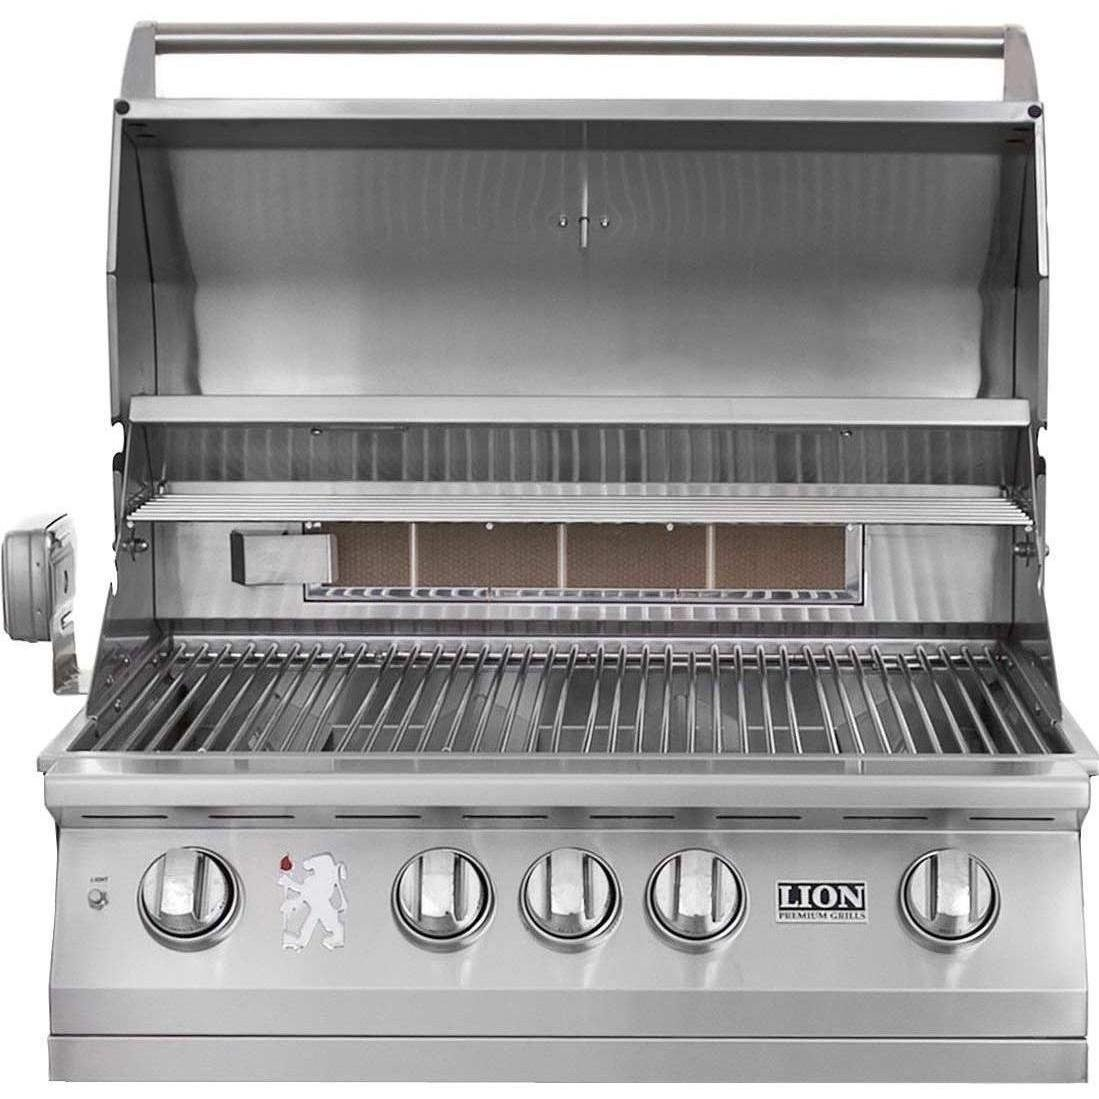 Lion Premium Natural Gas Grill